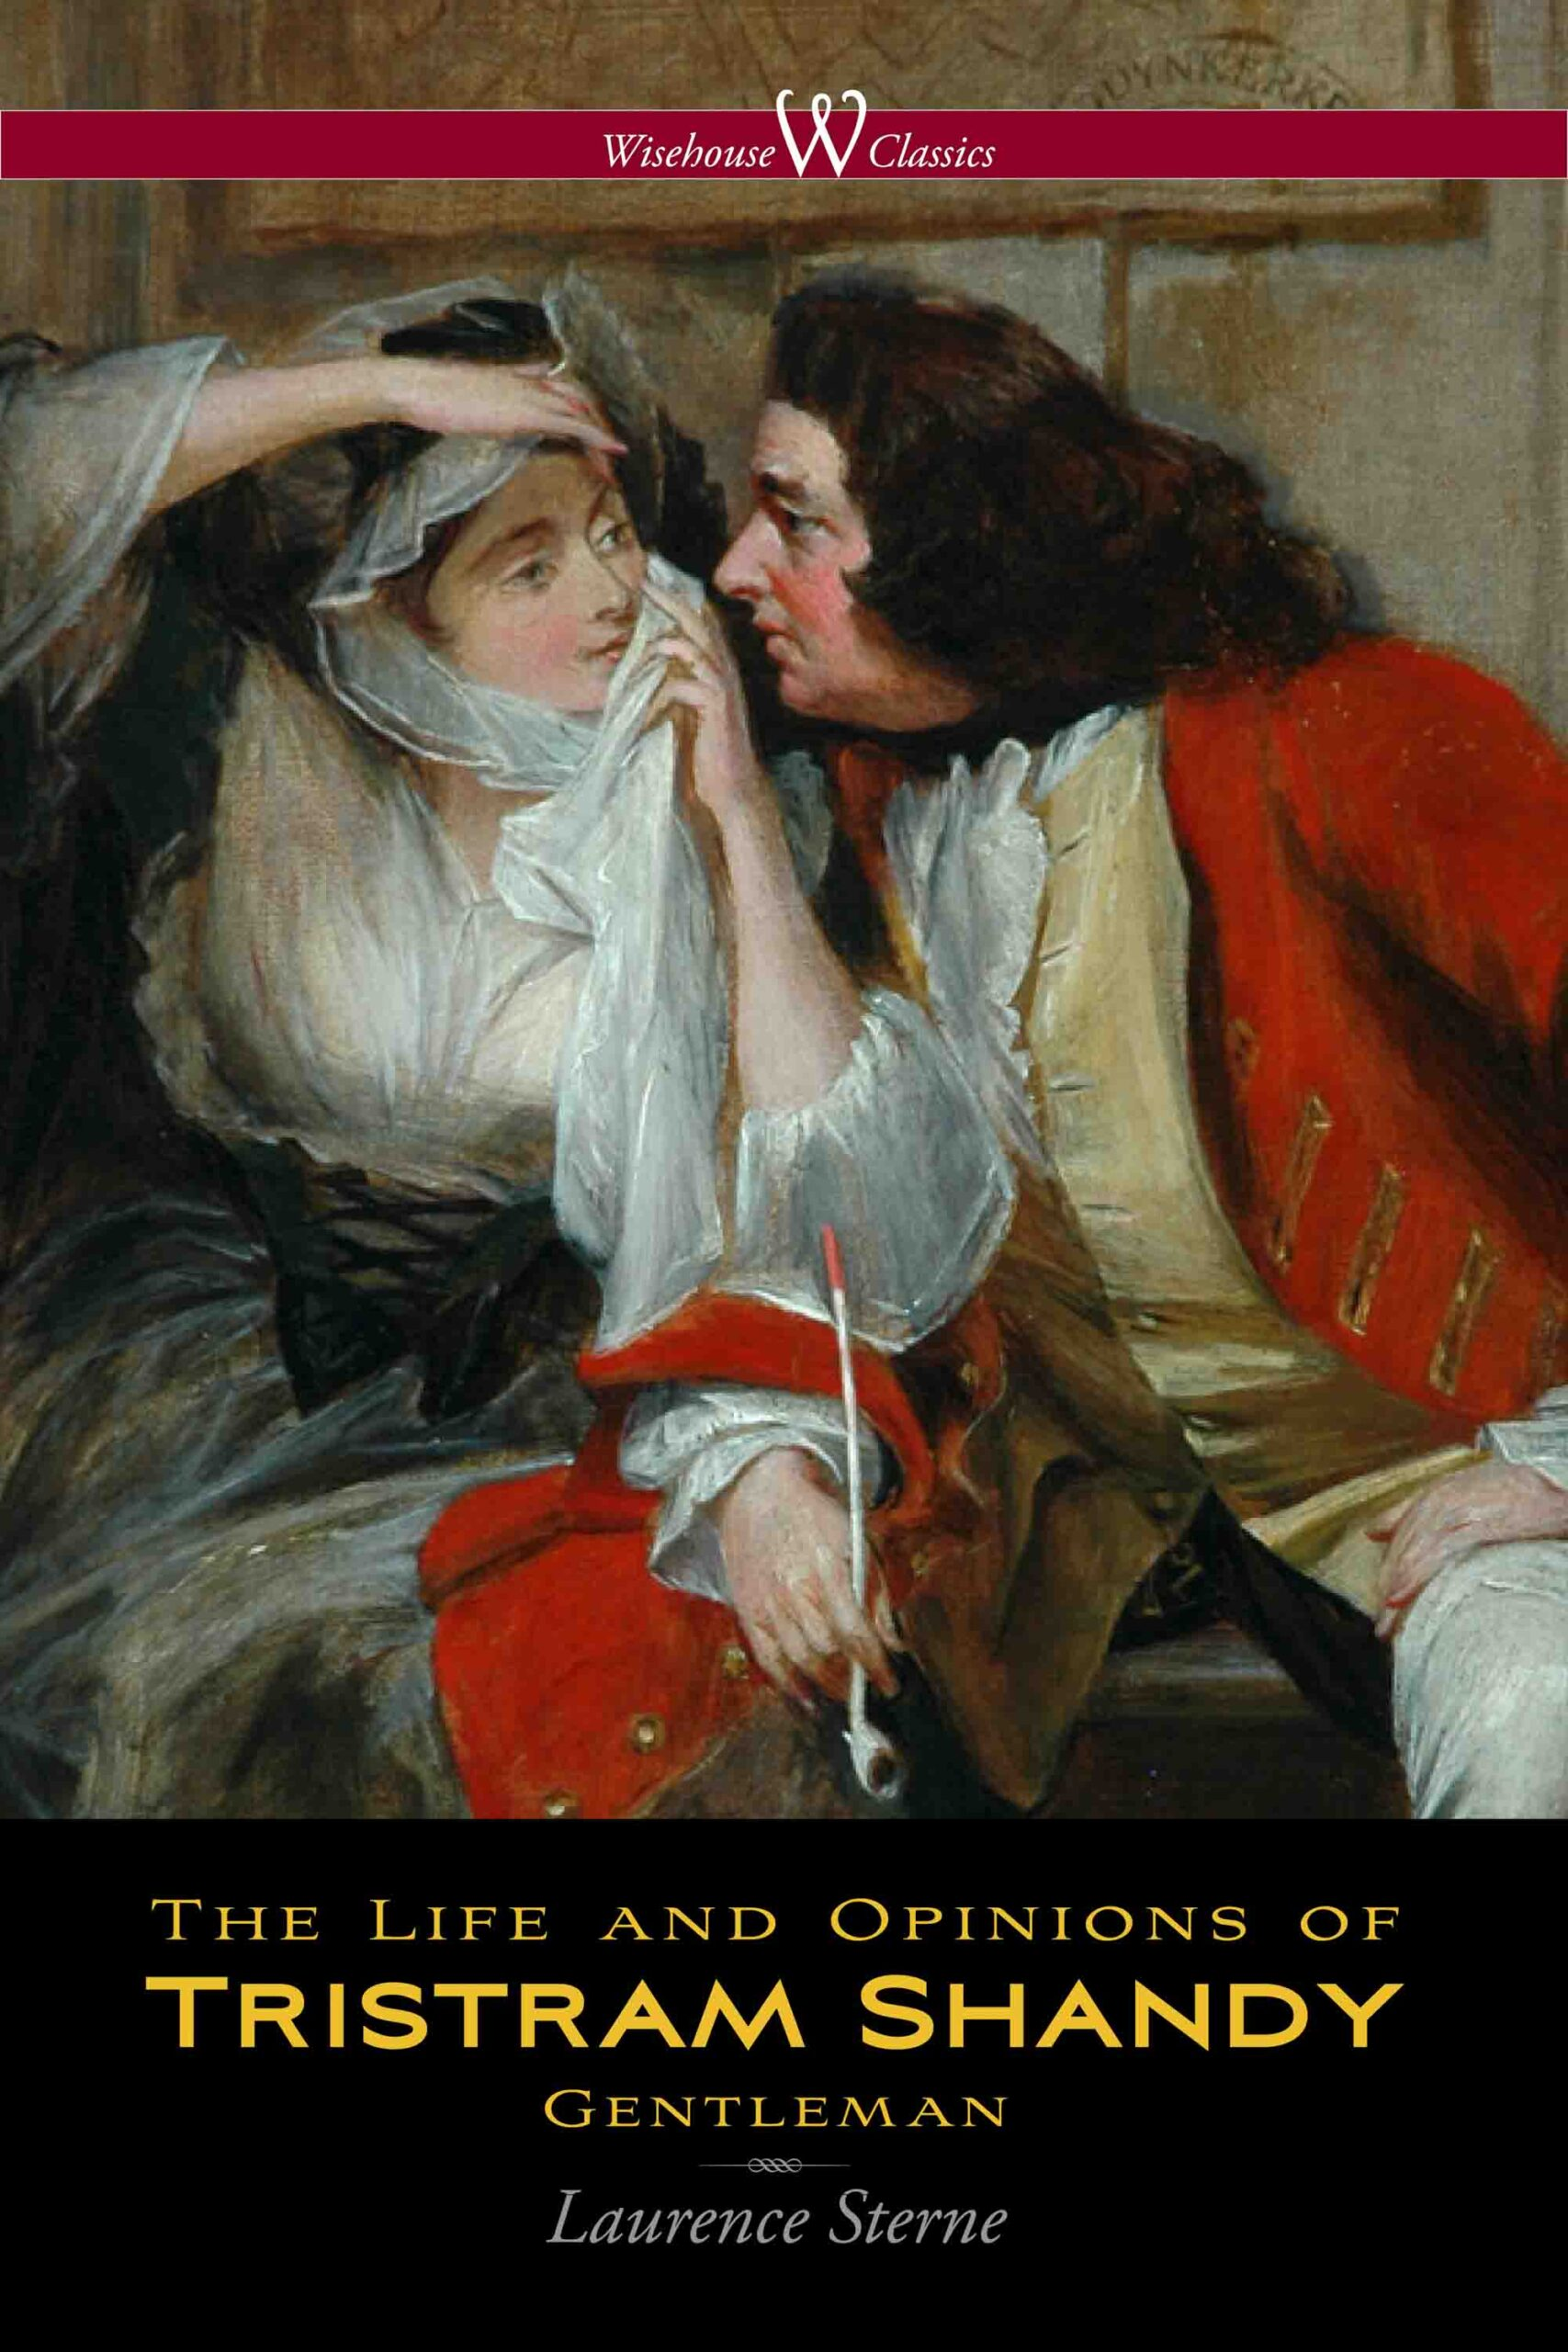 The Life and Opinions of Tristram Shandy, Gentleman (Wisehouse Classics Edition)